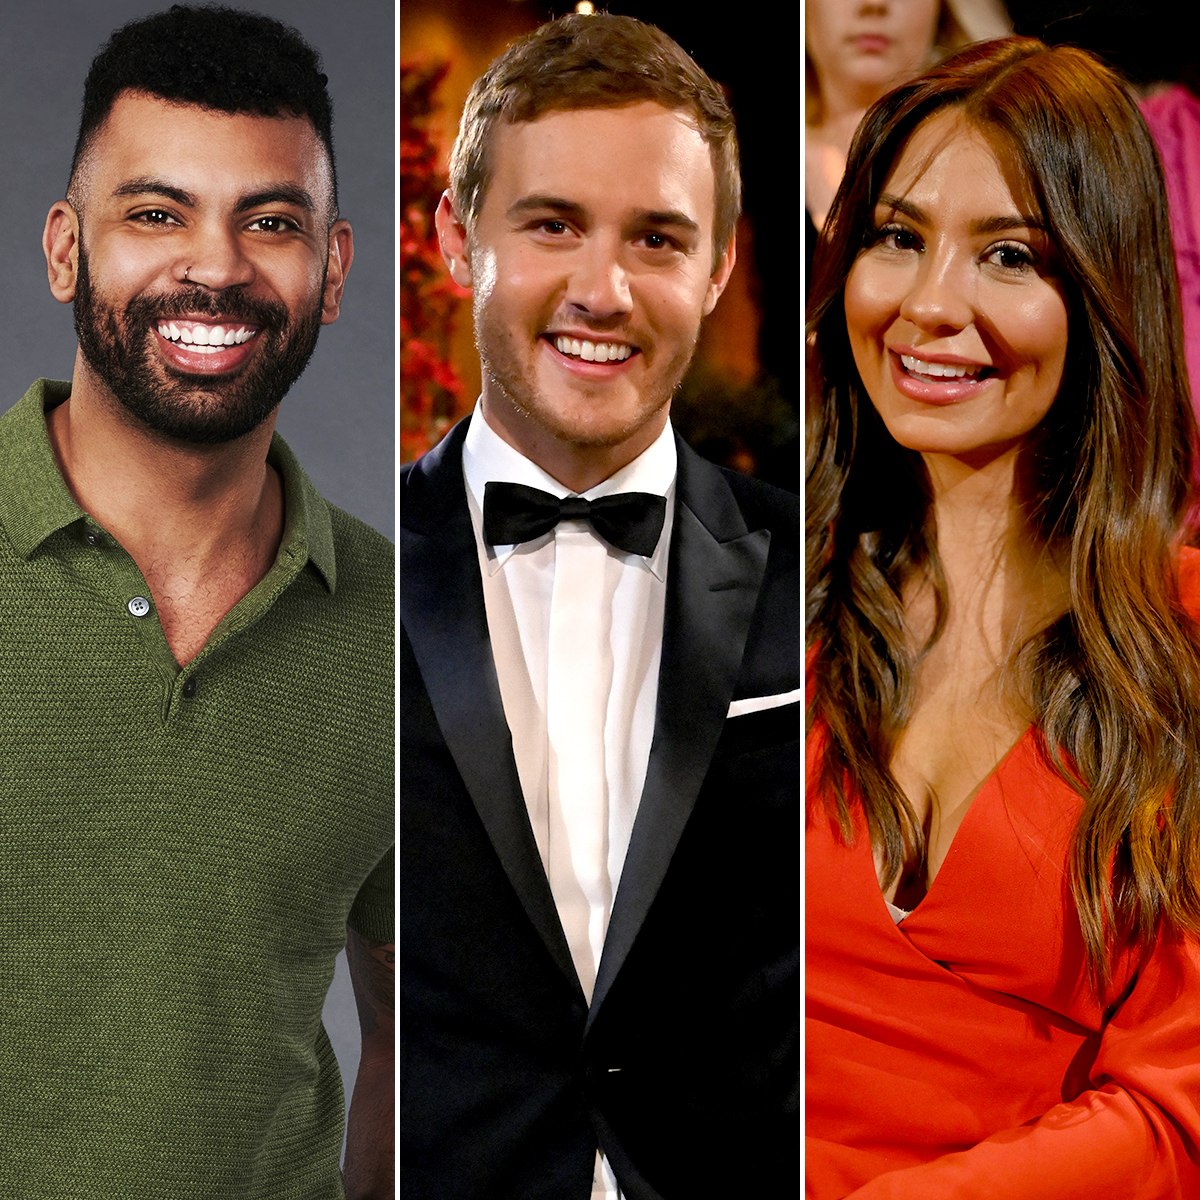 Bachelorette Dustin Kendrick Says Peter Weber and Kelley Flanagan Have Chemistry